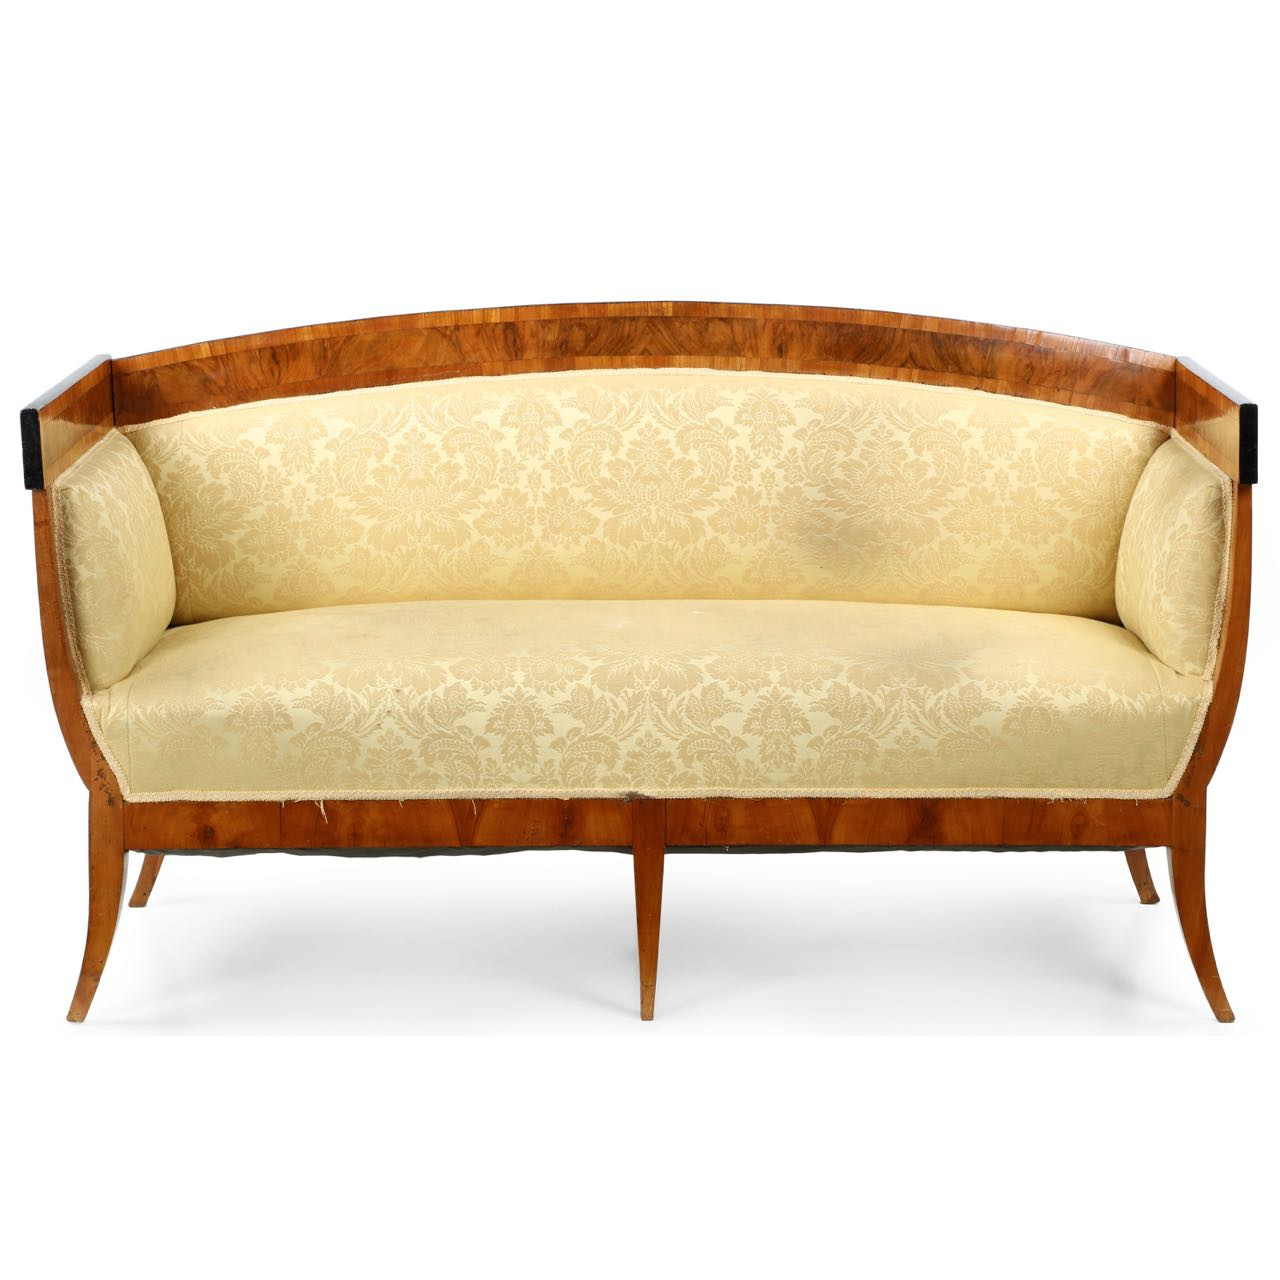 Biedermeier fruitwood antique sofa canape c 1830 Biedermeier sofa